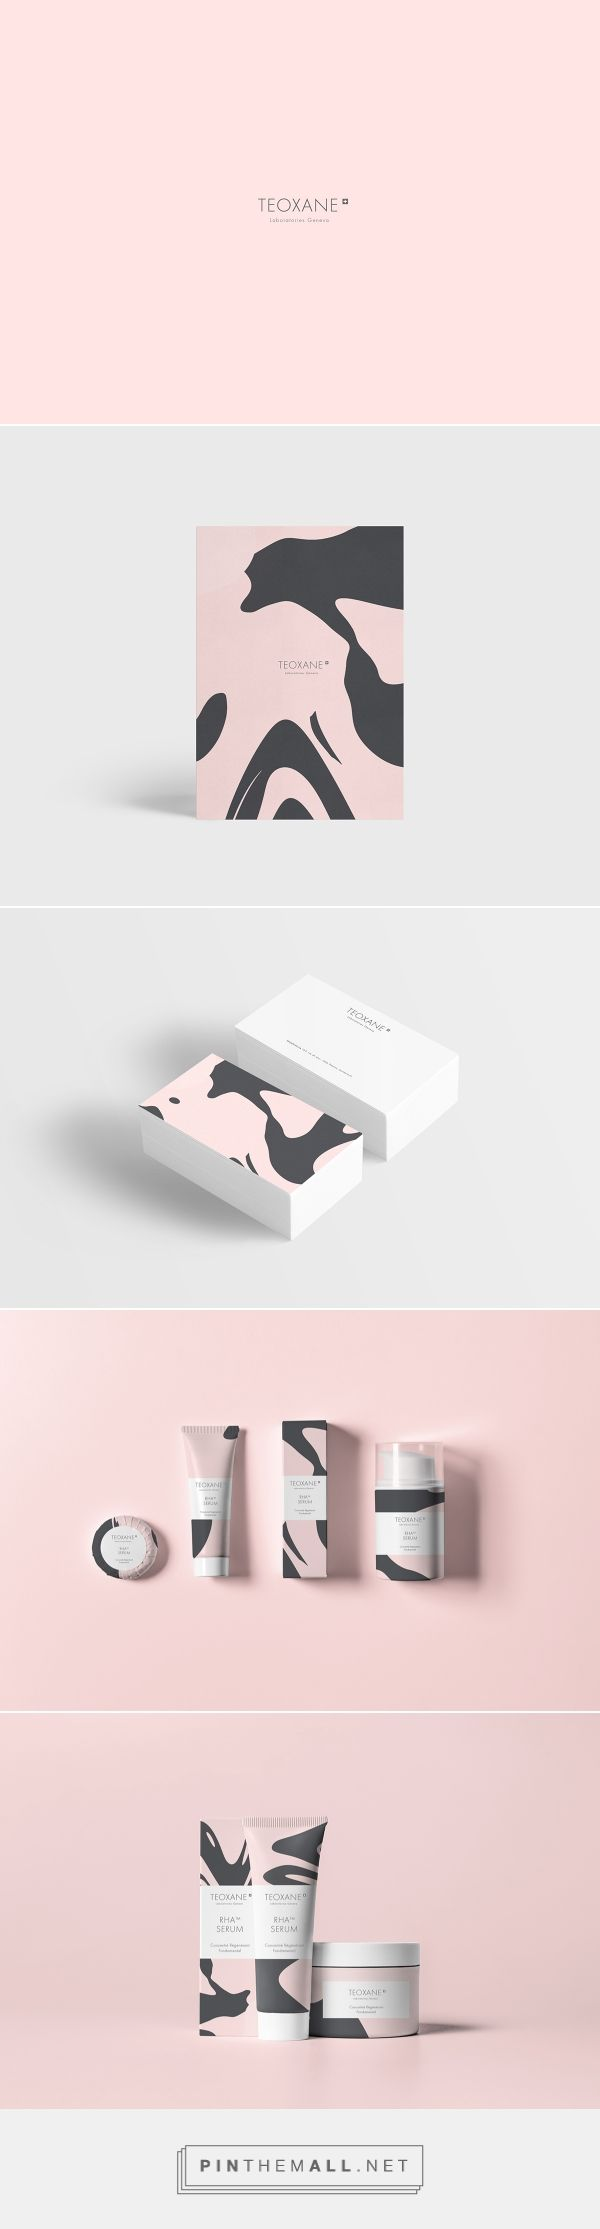 Teoxane on Behance by Tuper Oir Paris, France PD curated by Packaging Diva PD. Pretty in pink cosmetic packaging branding. Refonte du logo / charte graphique, art direction, graphic design.